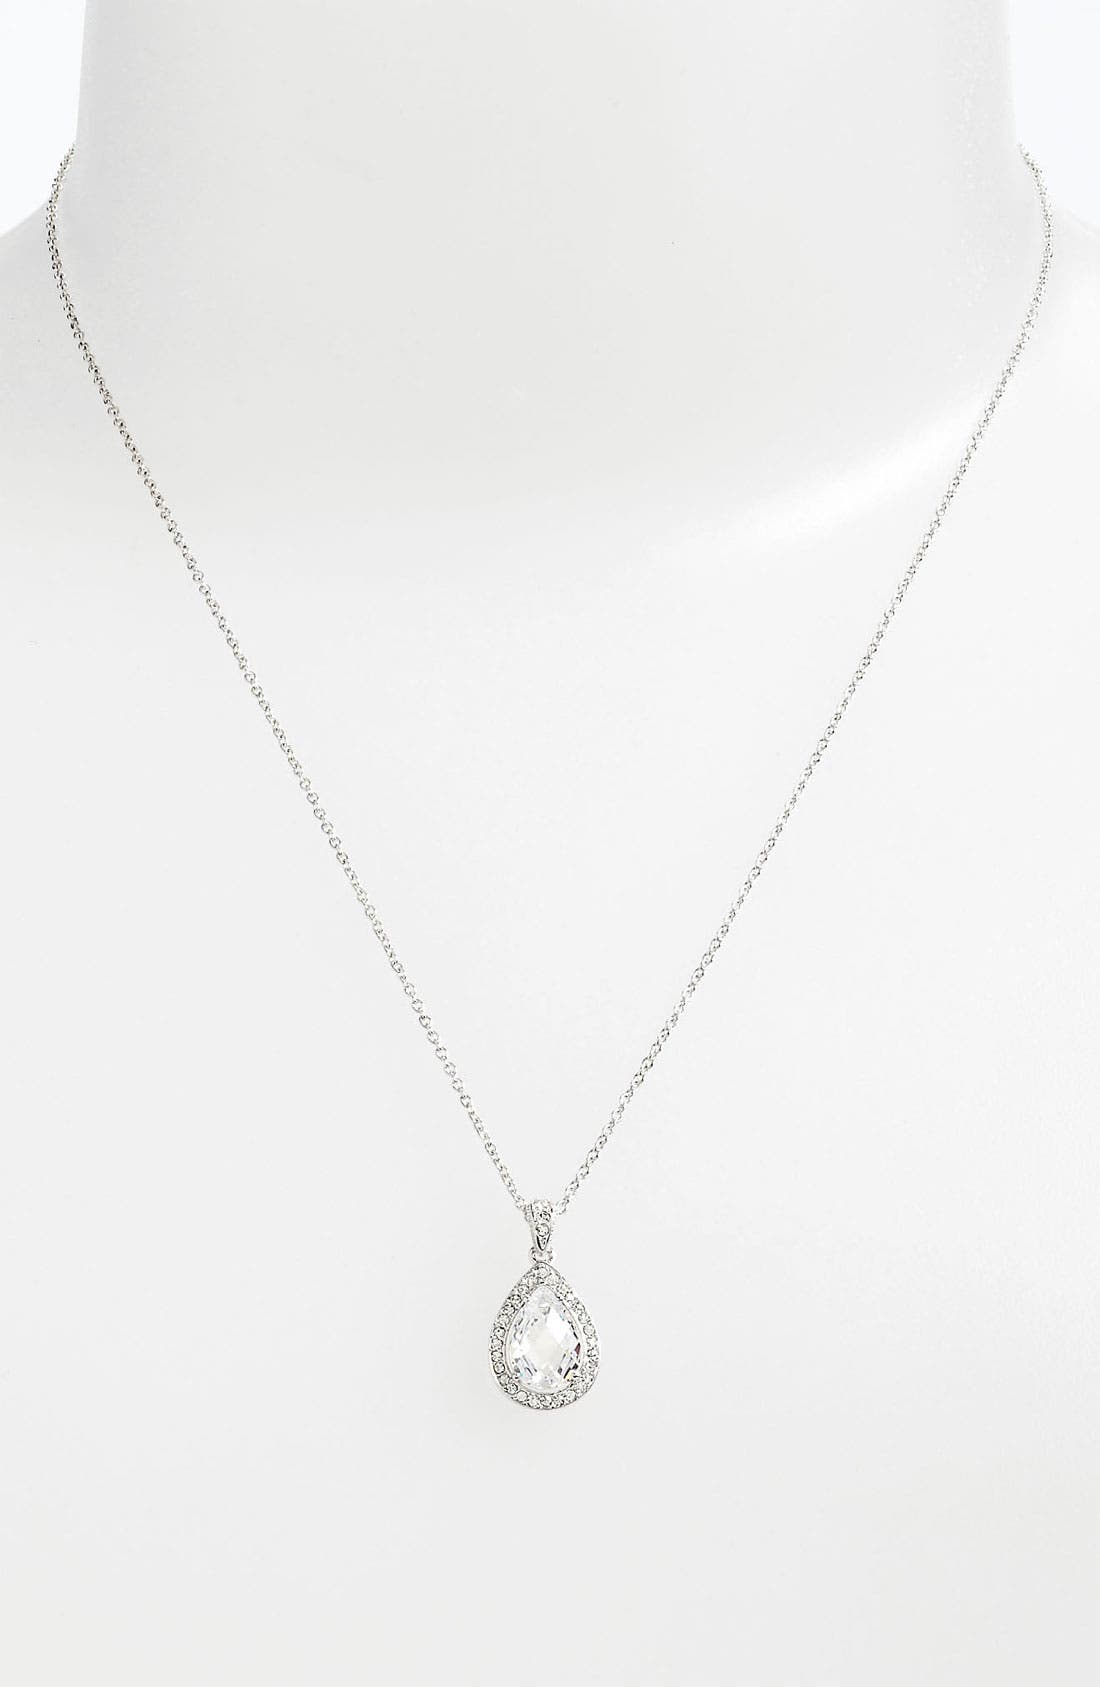 Main Image - Nadri Teardrop Pendant Necklace